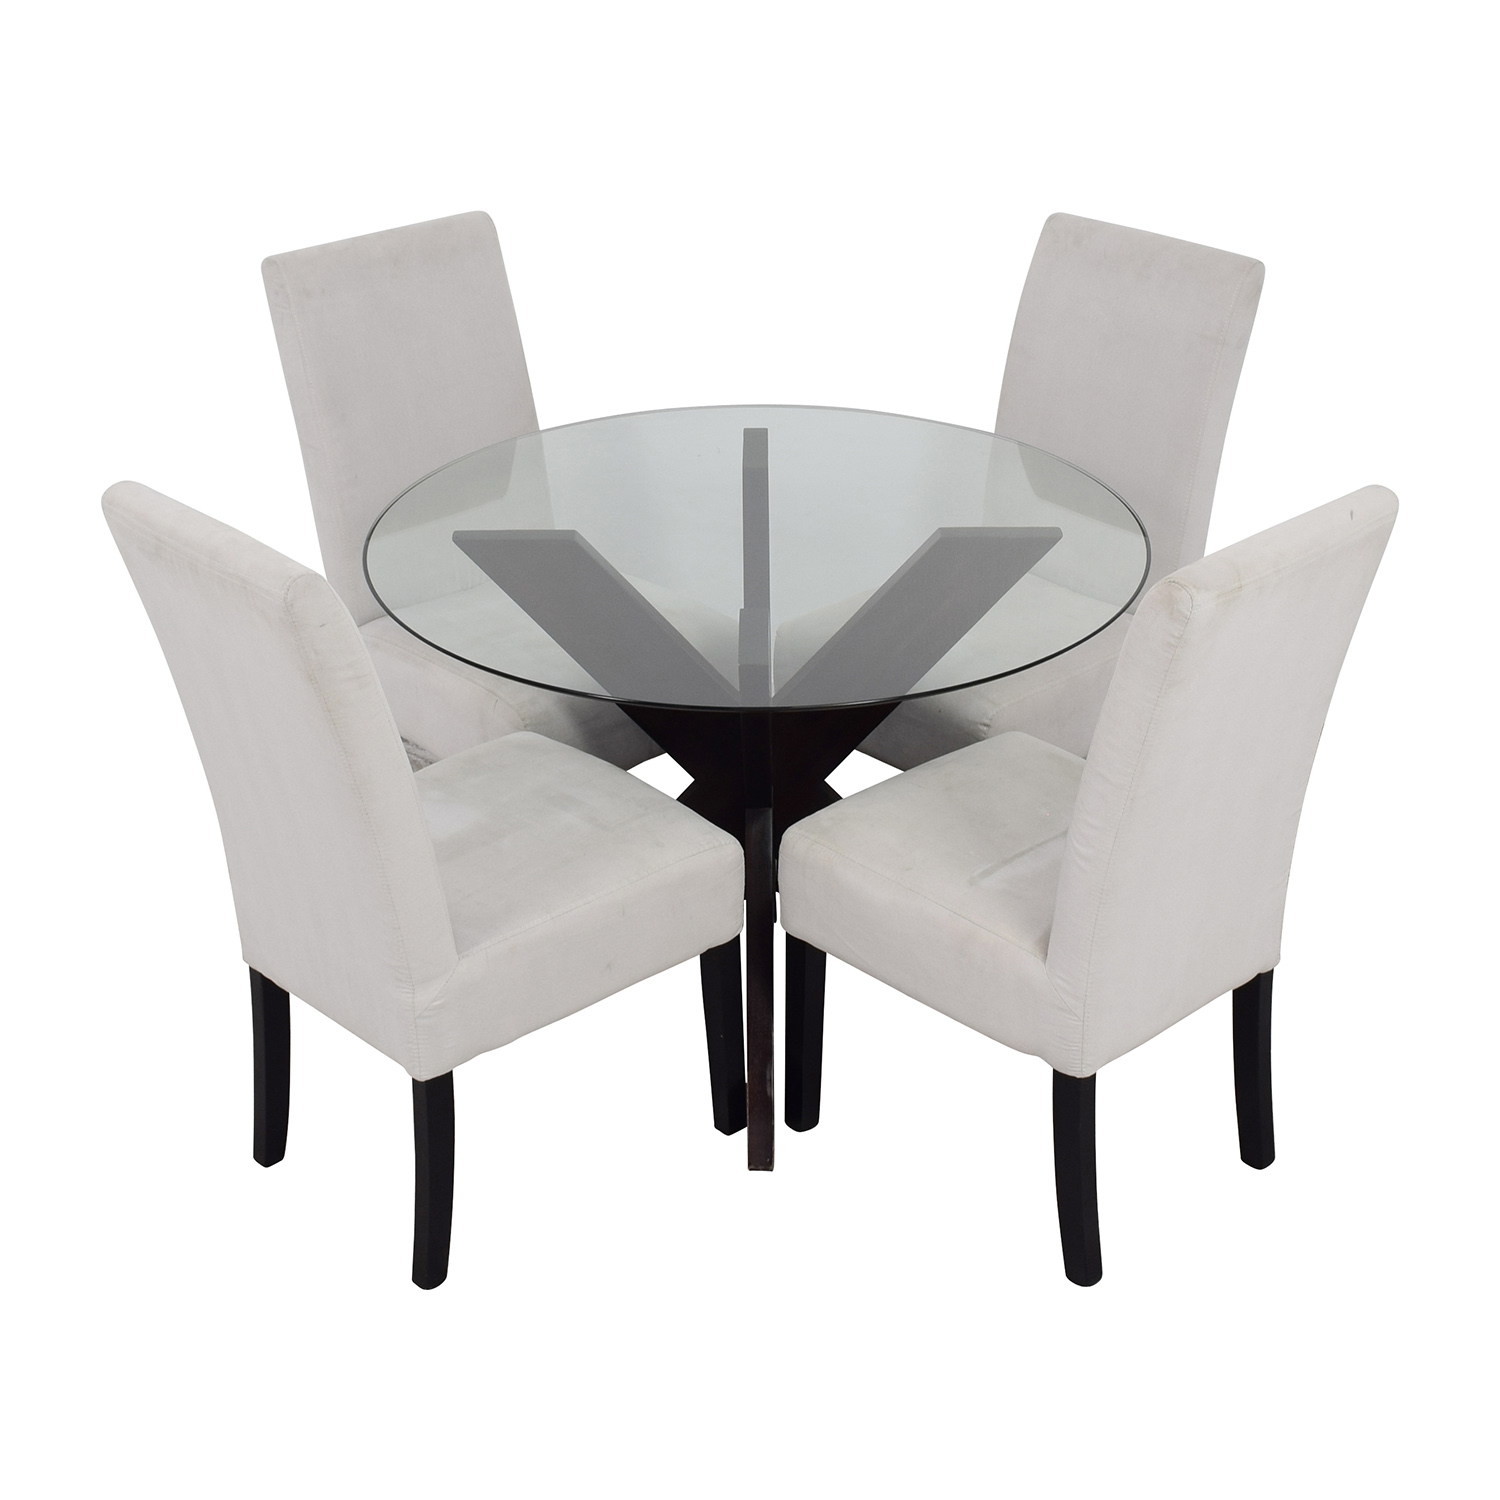 glass and wood dining table chairs swivel chair uk ebay 74 off crate barrel round